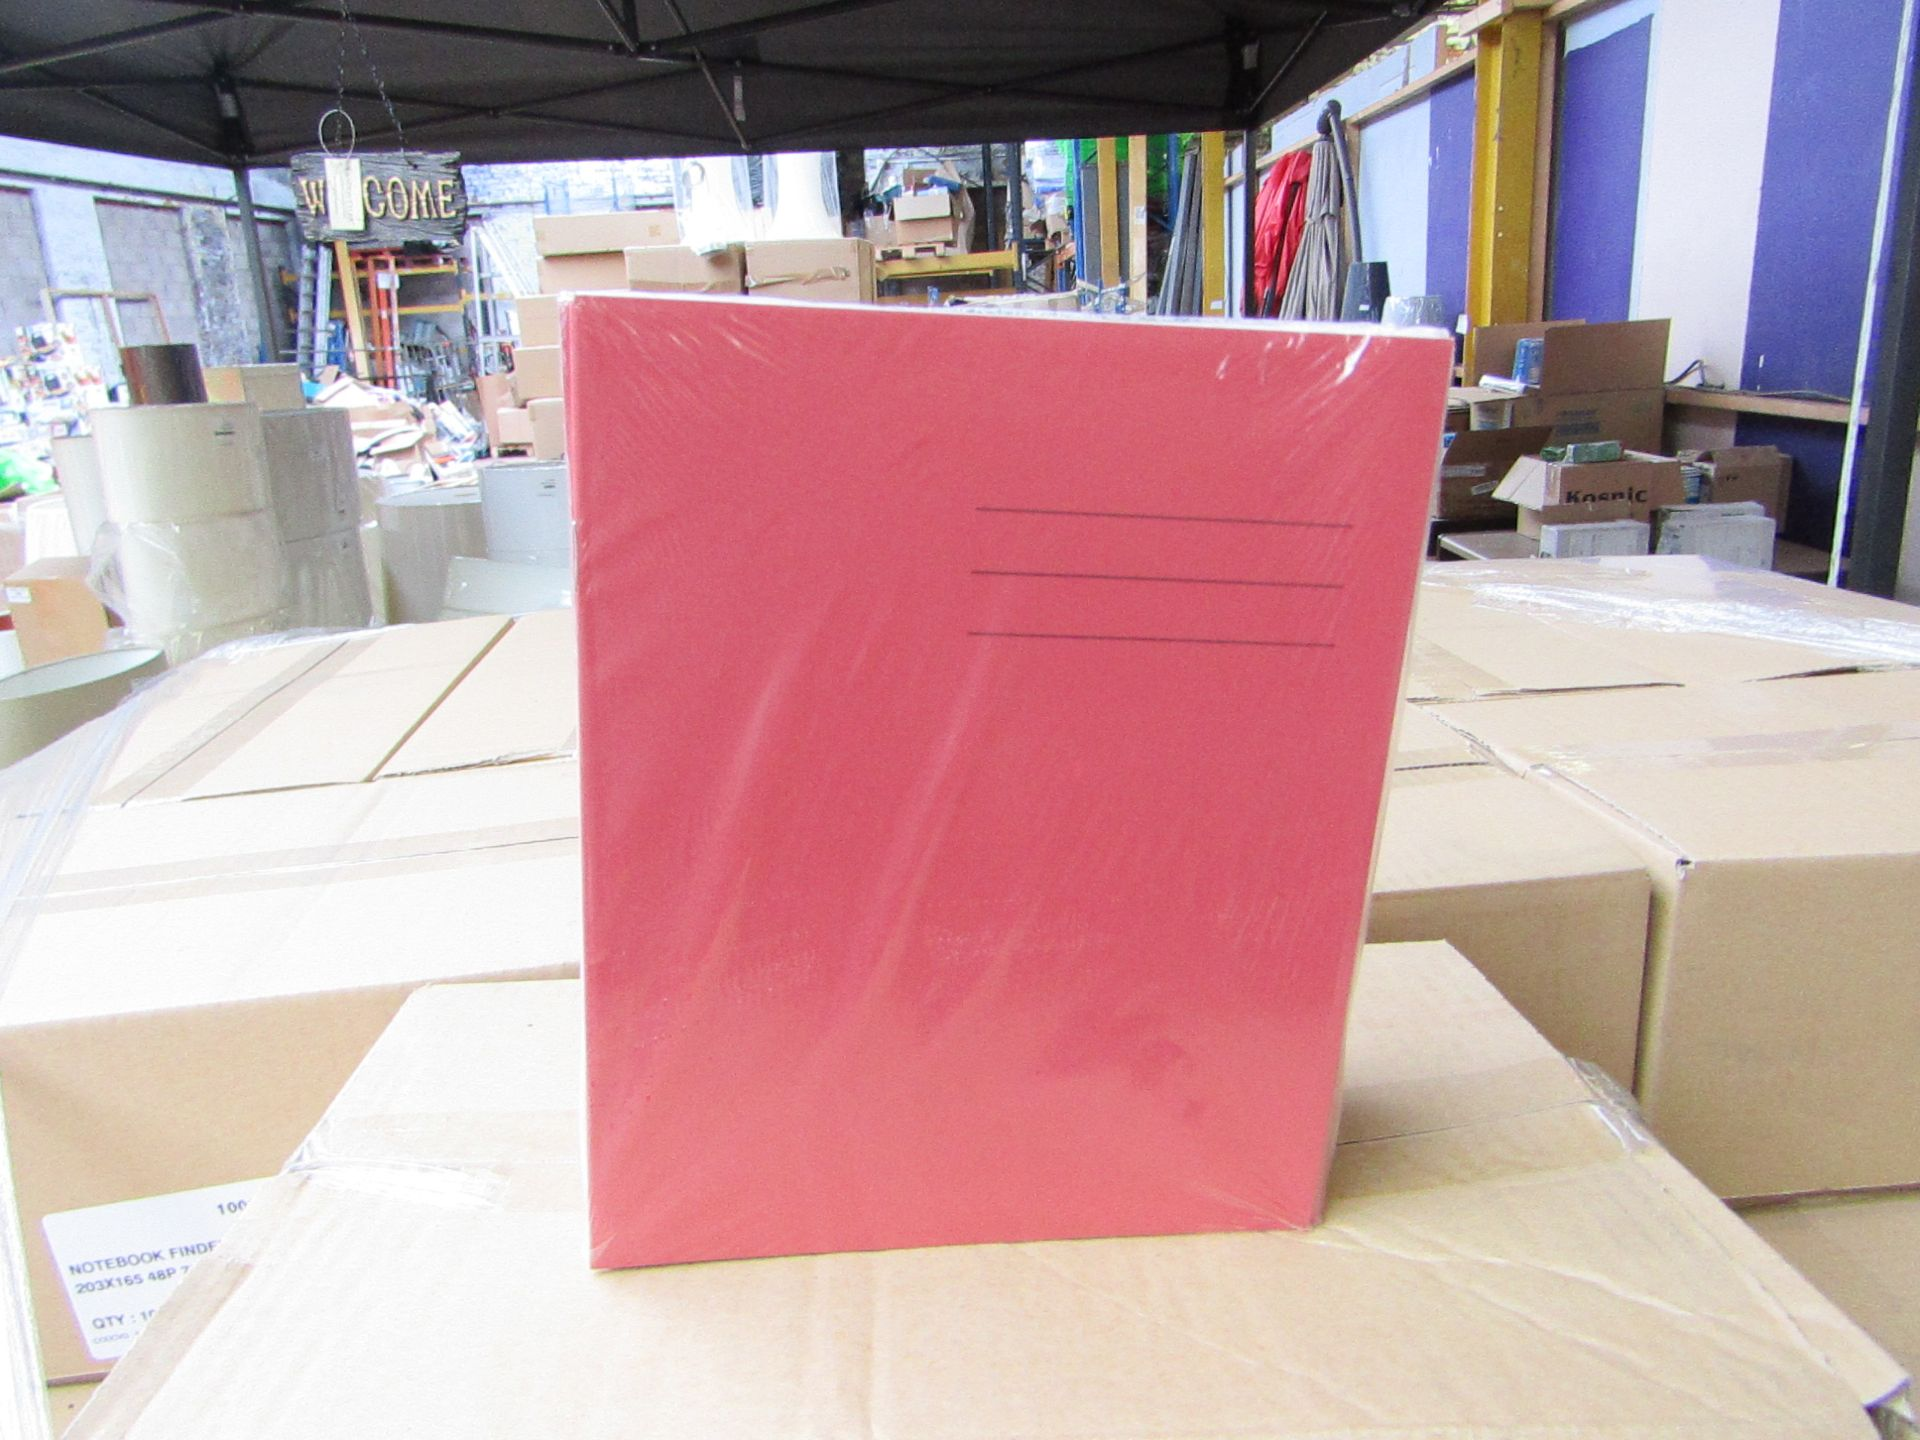 Lot 8 - Box of approx 100 Exercise books, please note these are picked from a mixed pallet and colours may